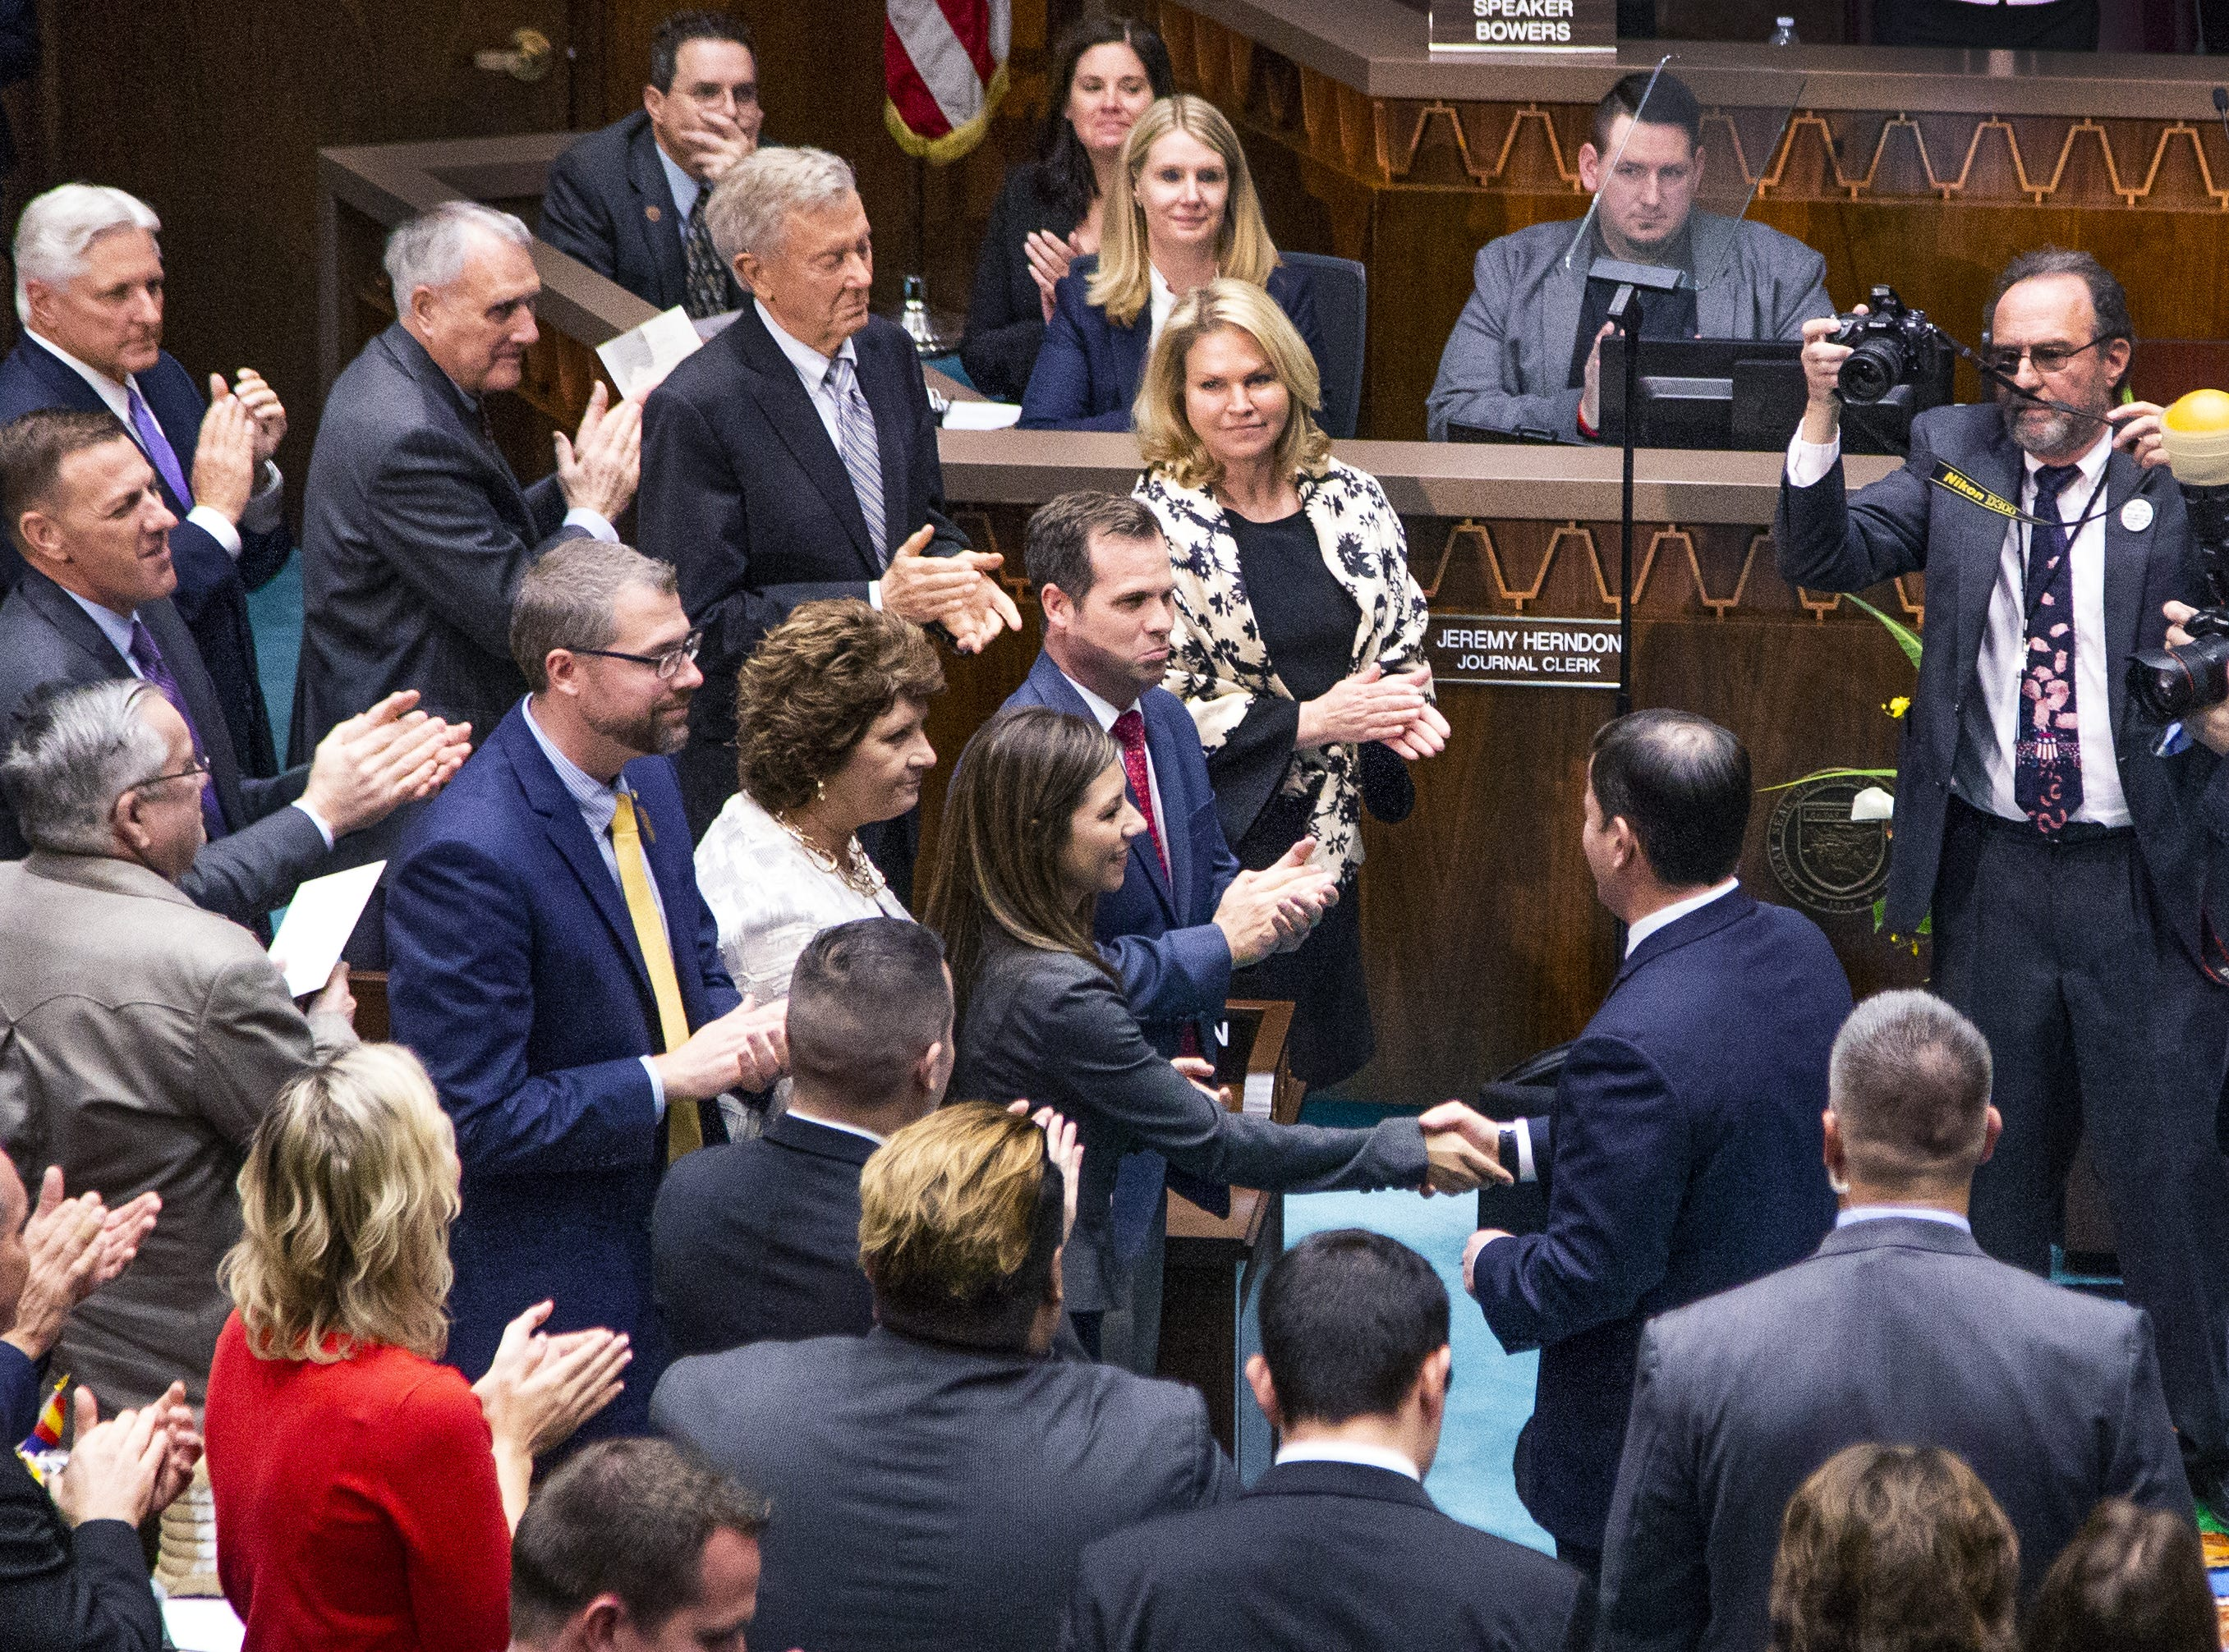 Gov. Doug Ducey enters the House chamber to deliver his State of the State address to the Legislature and guests gathered at the State Capitol on Jan. 14, 2019.